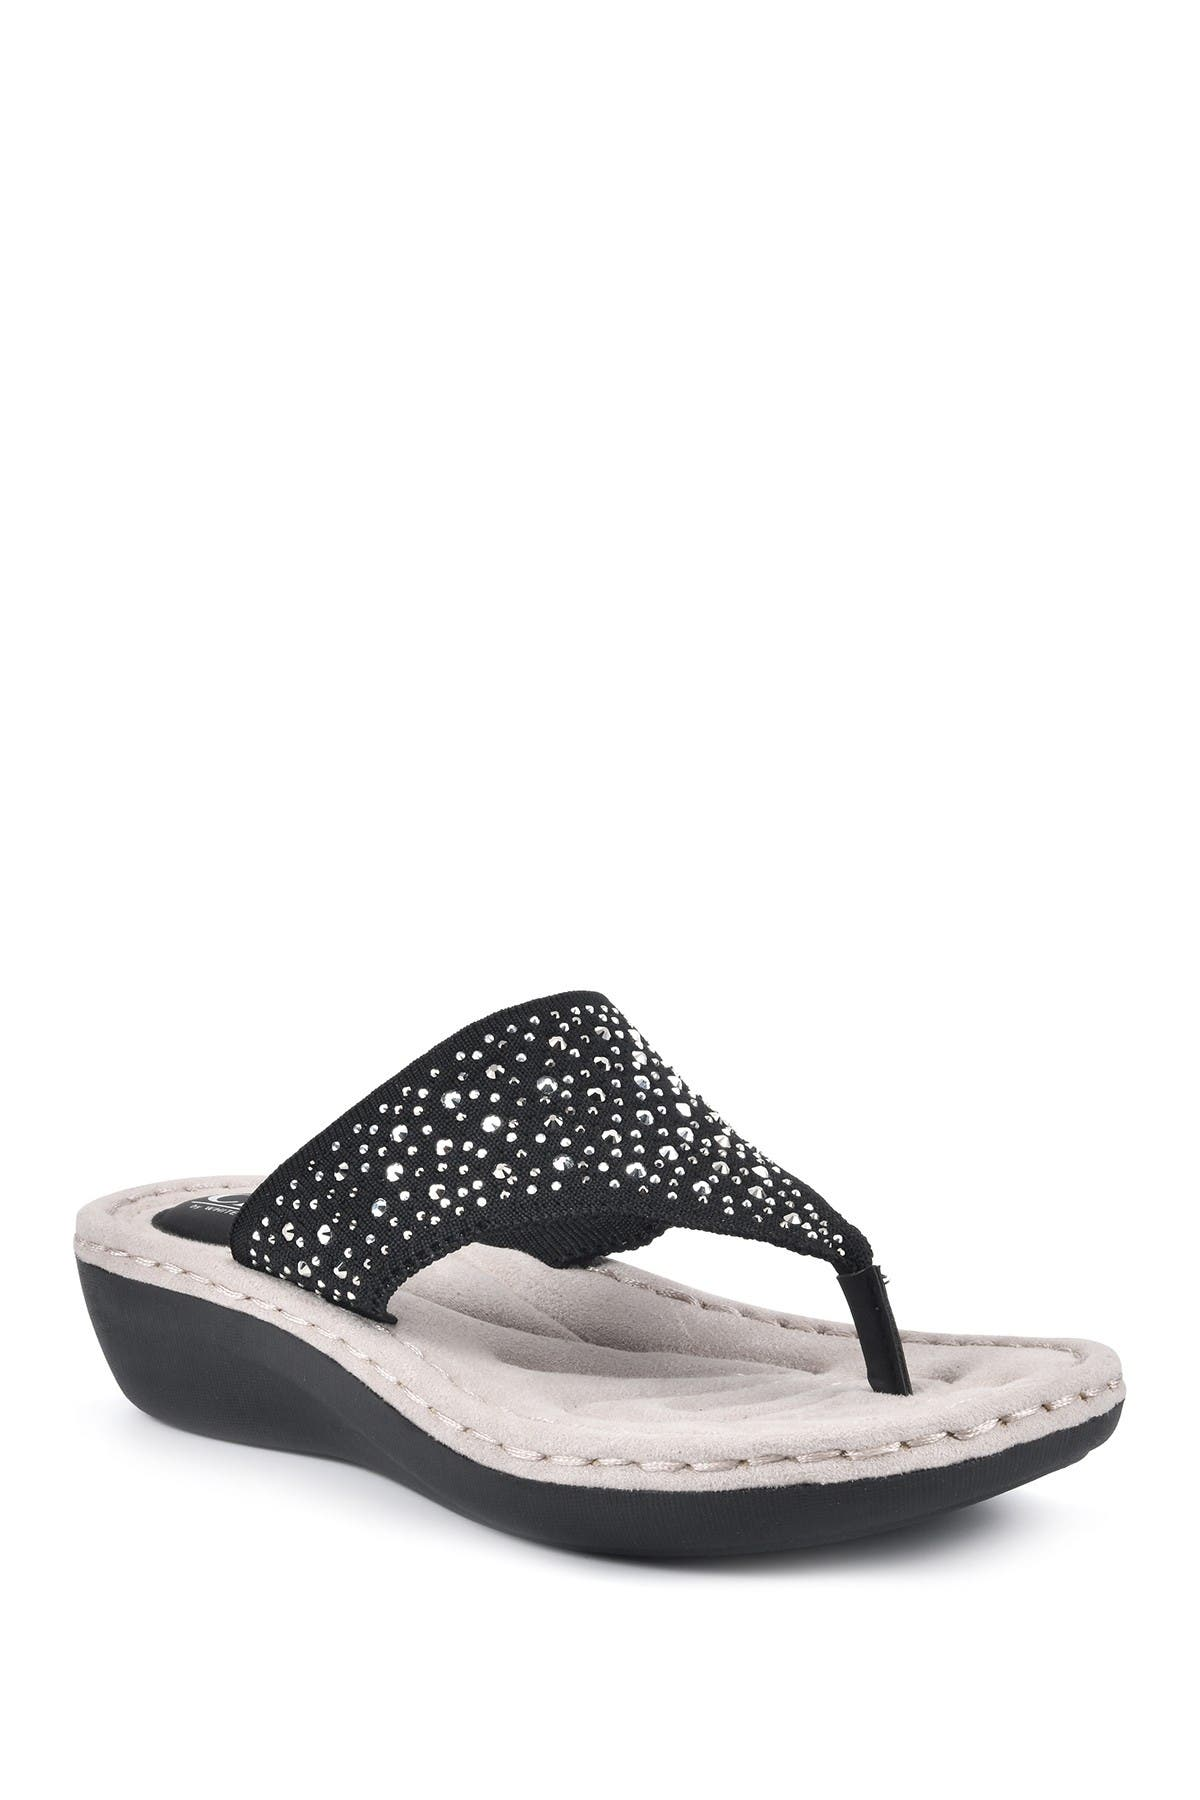 Cliffs By White Mountain CALLING THONG COMFORT SANDAL